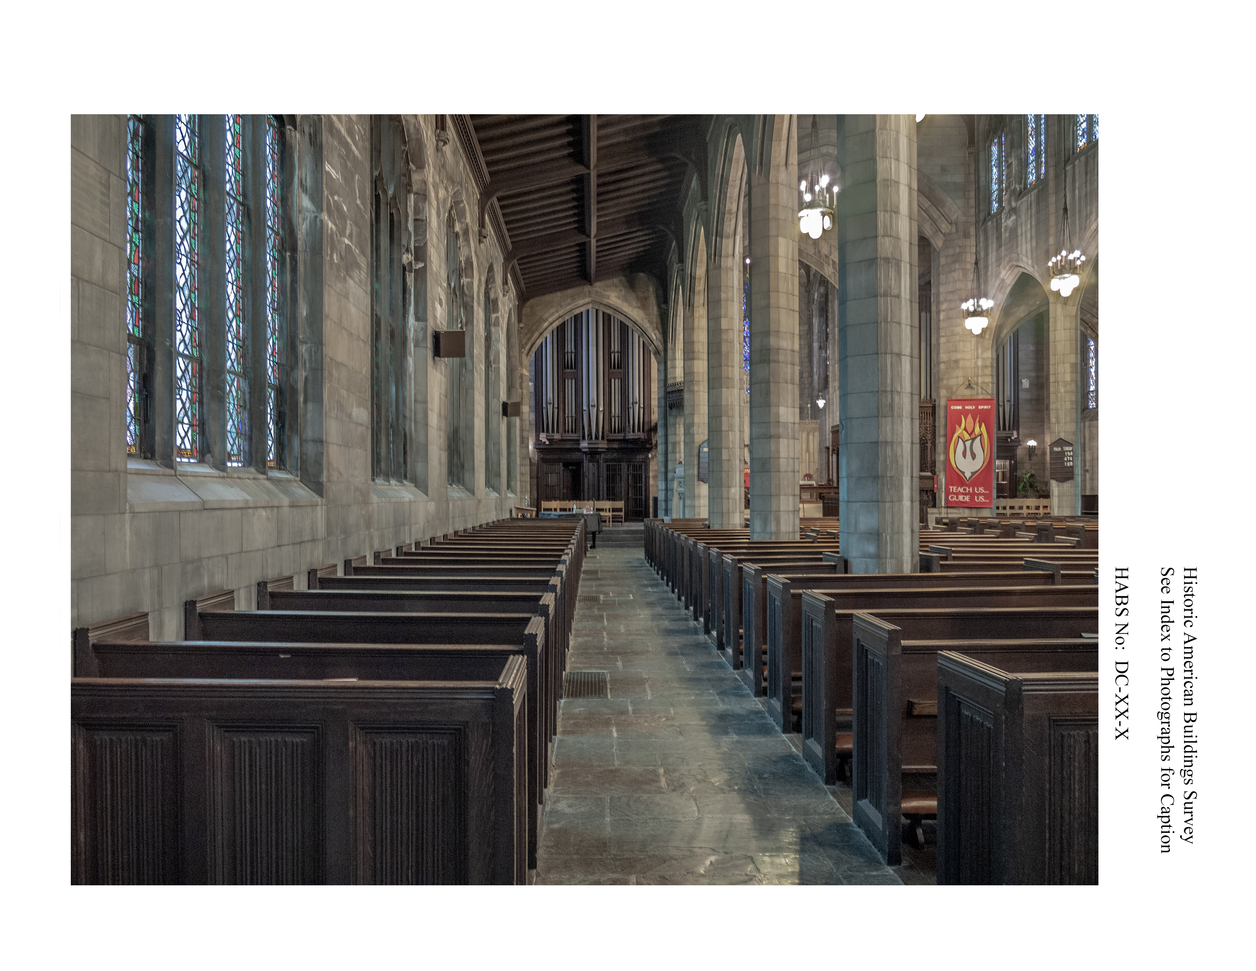 Interior of an old church